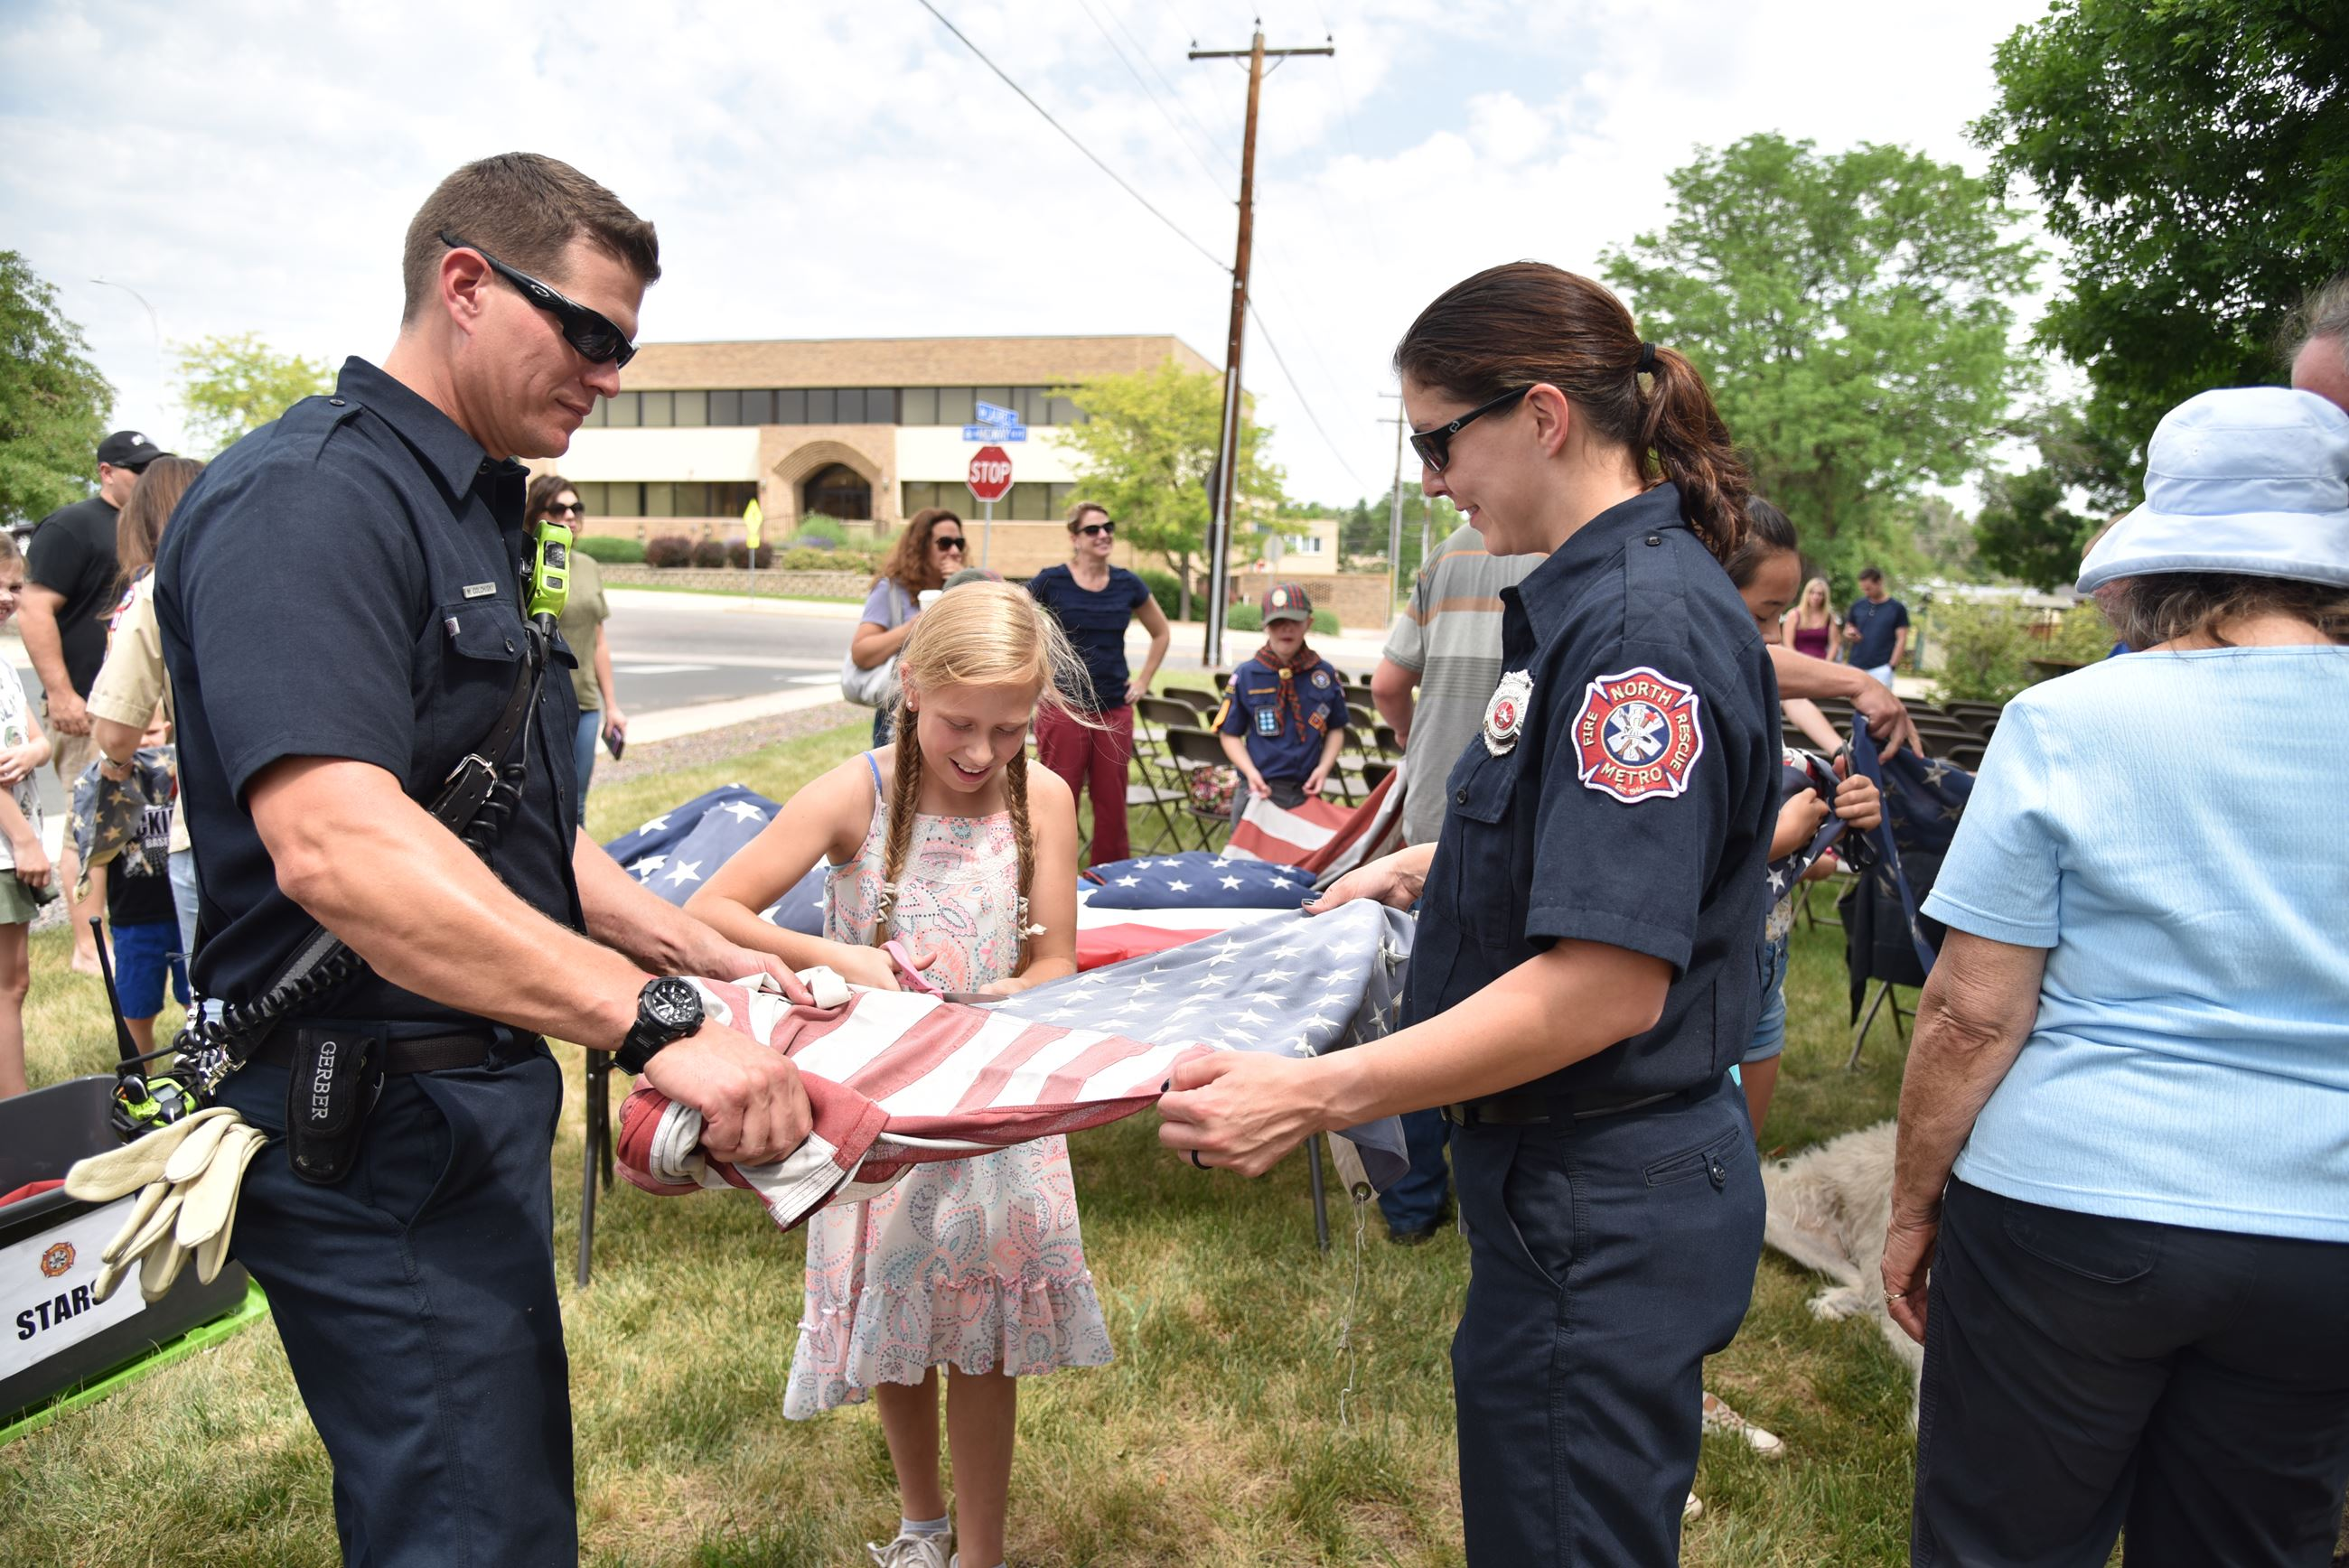 Young girl is assisted by two North Metro firefighters as she cuts the flag to properly retire it